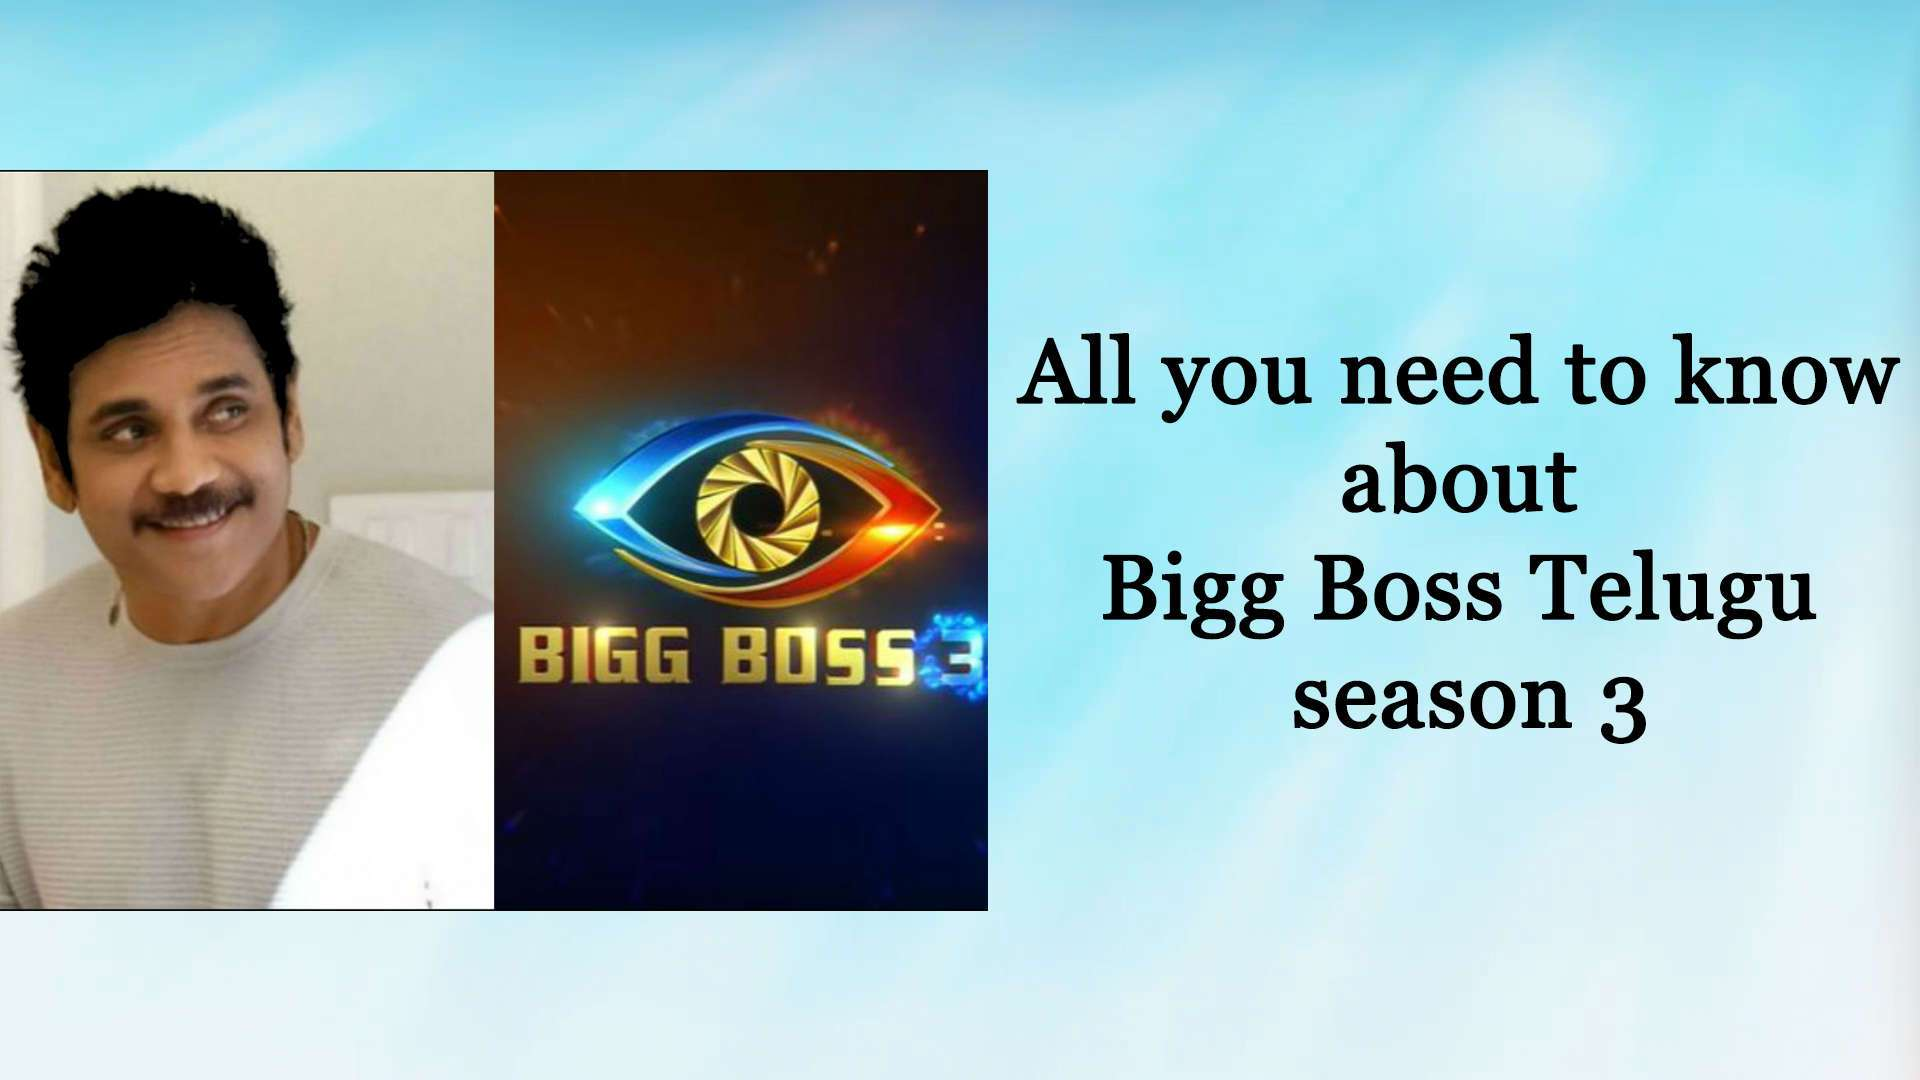 Bigg Boss Telugu Season 3: Latest News, Videos and Photos of Bigg